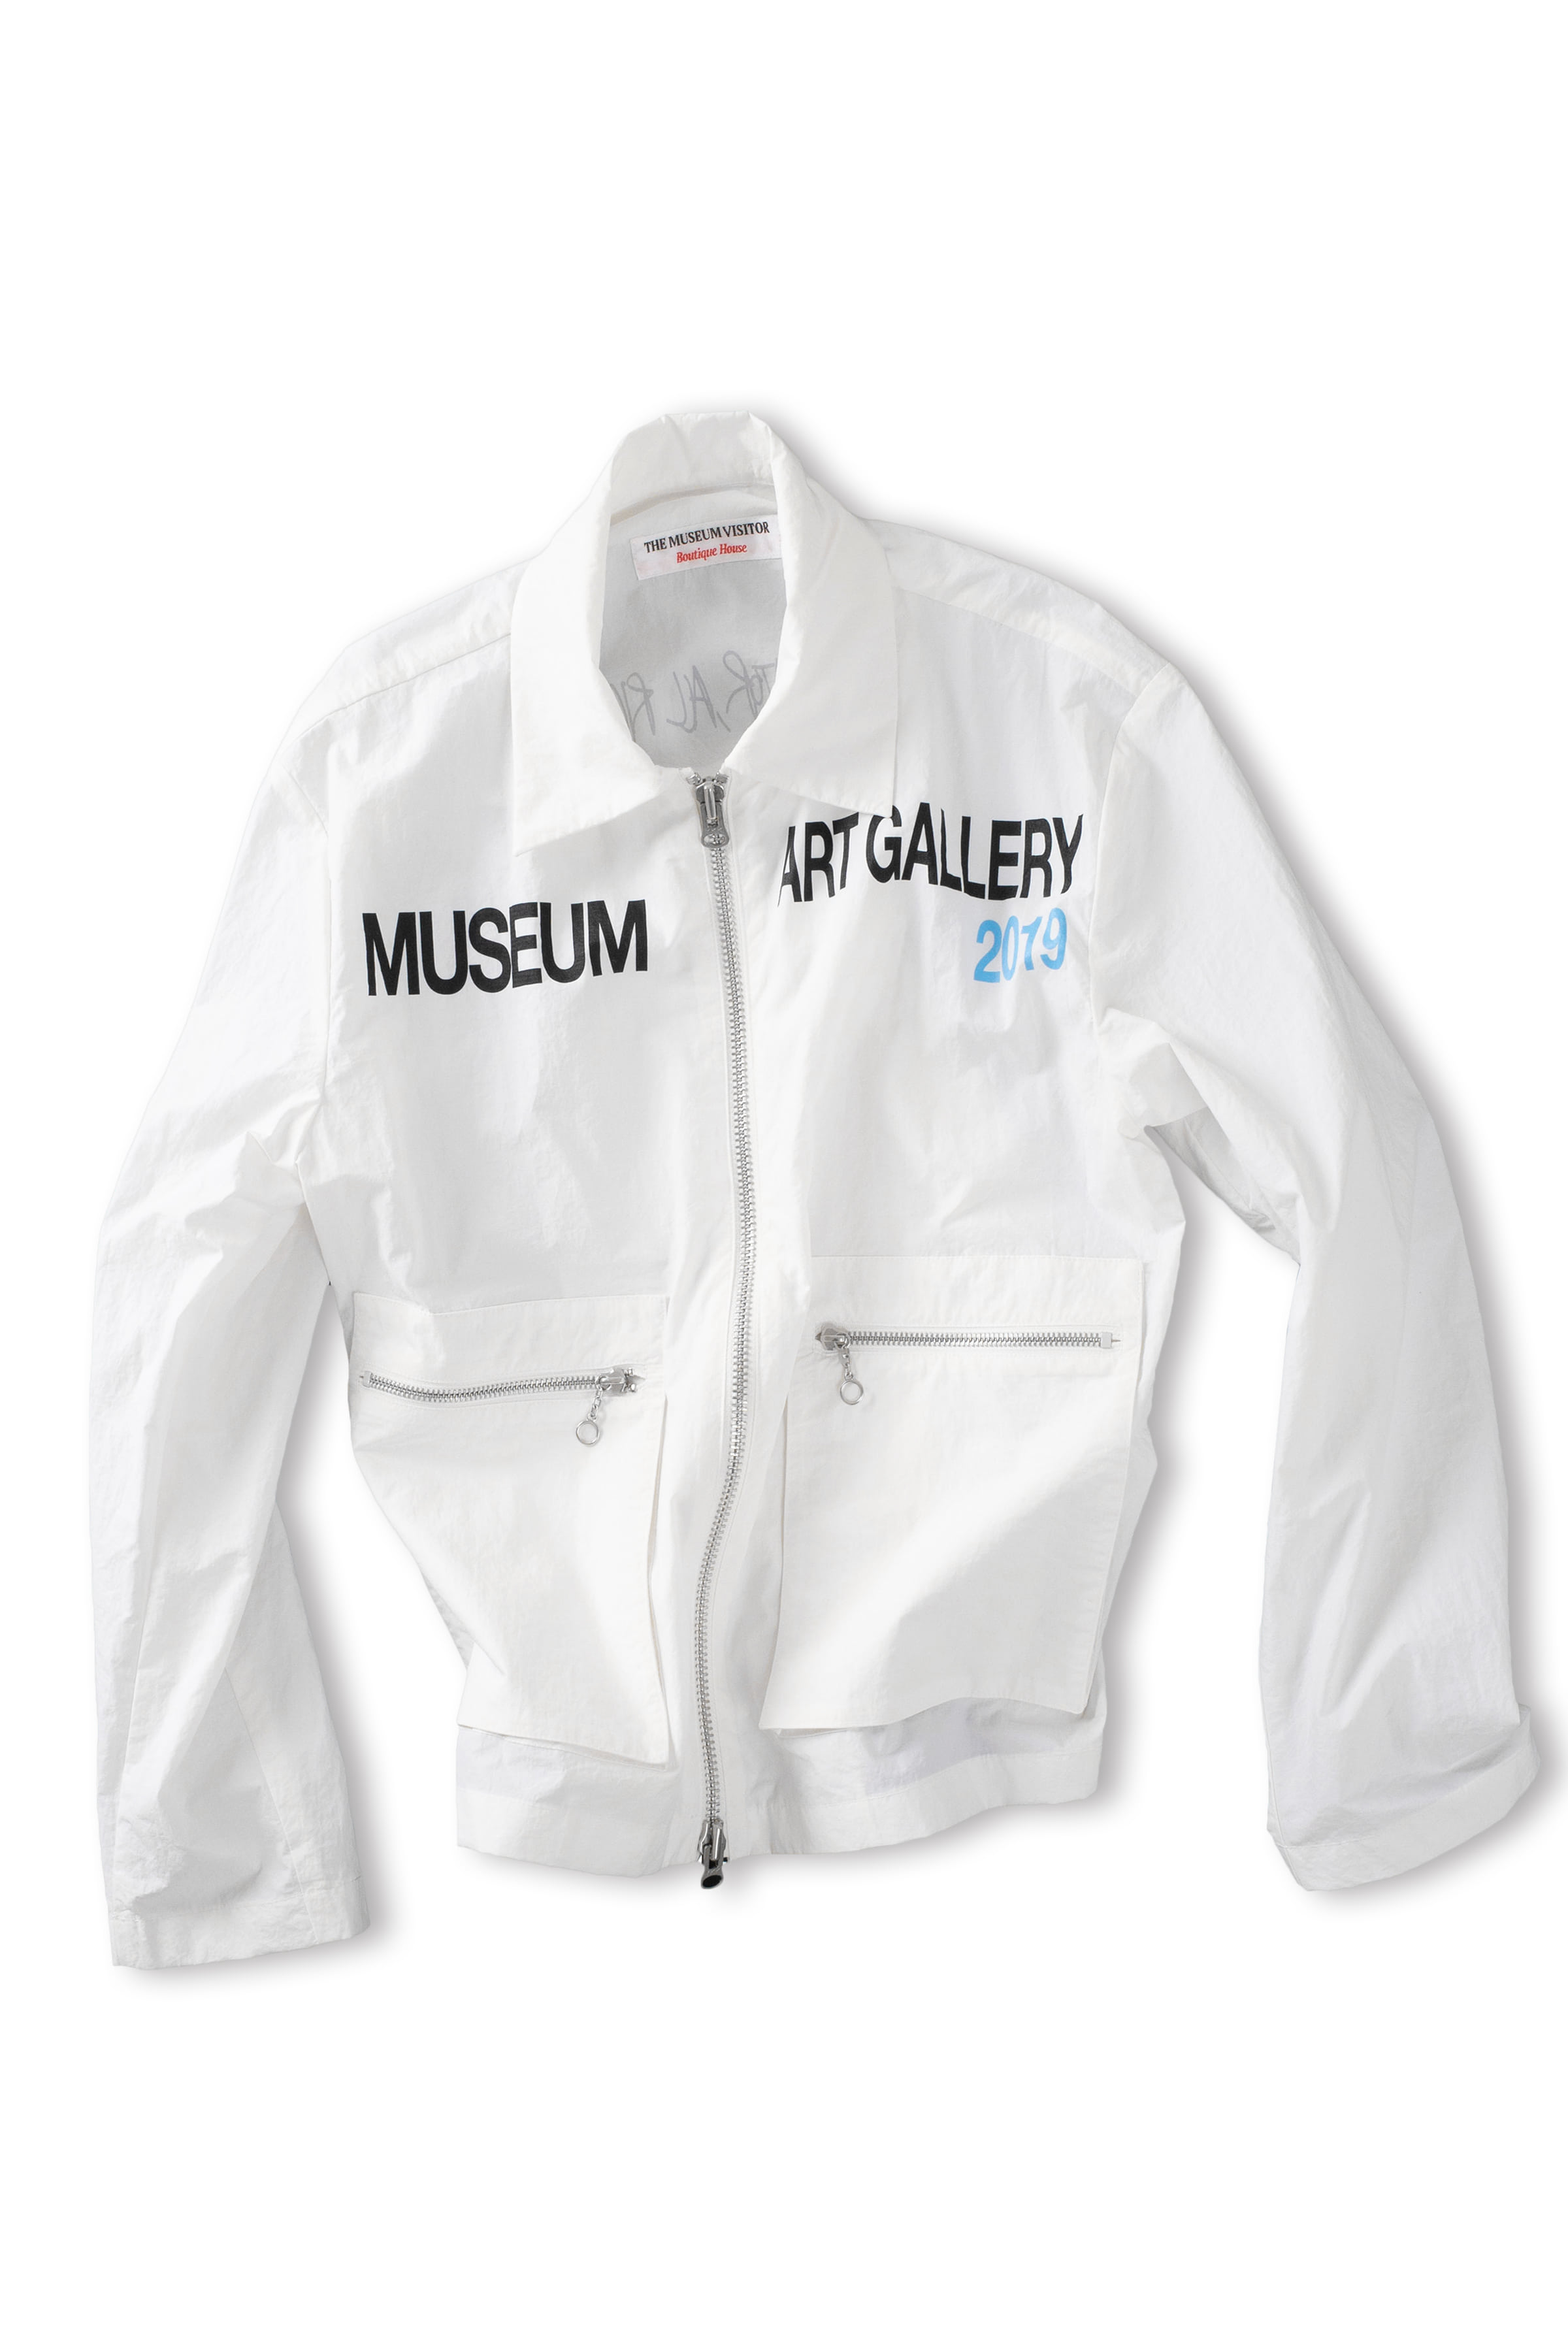 THE MUSEUM VISITOR : Museum Art Gallery Blouson (White)